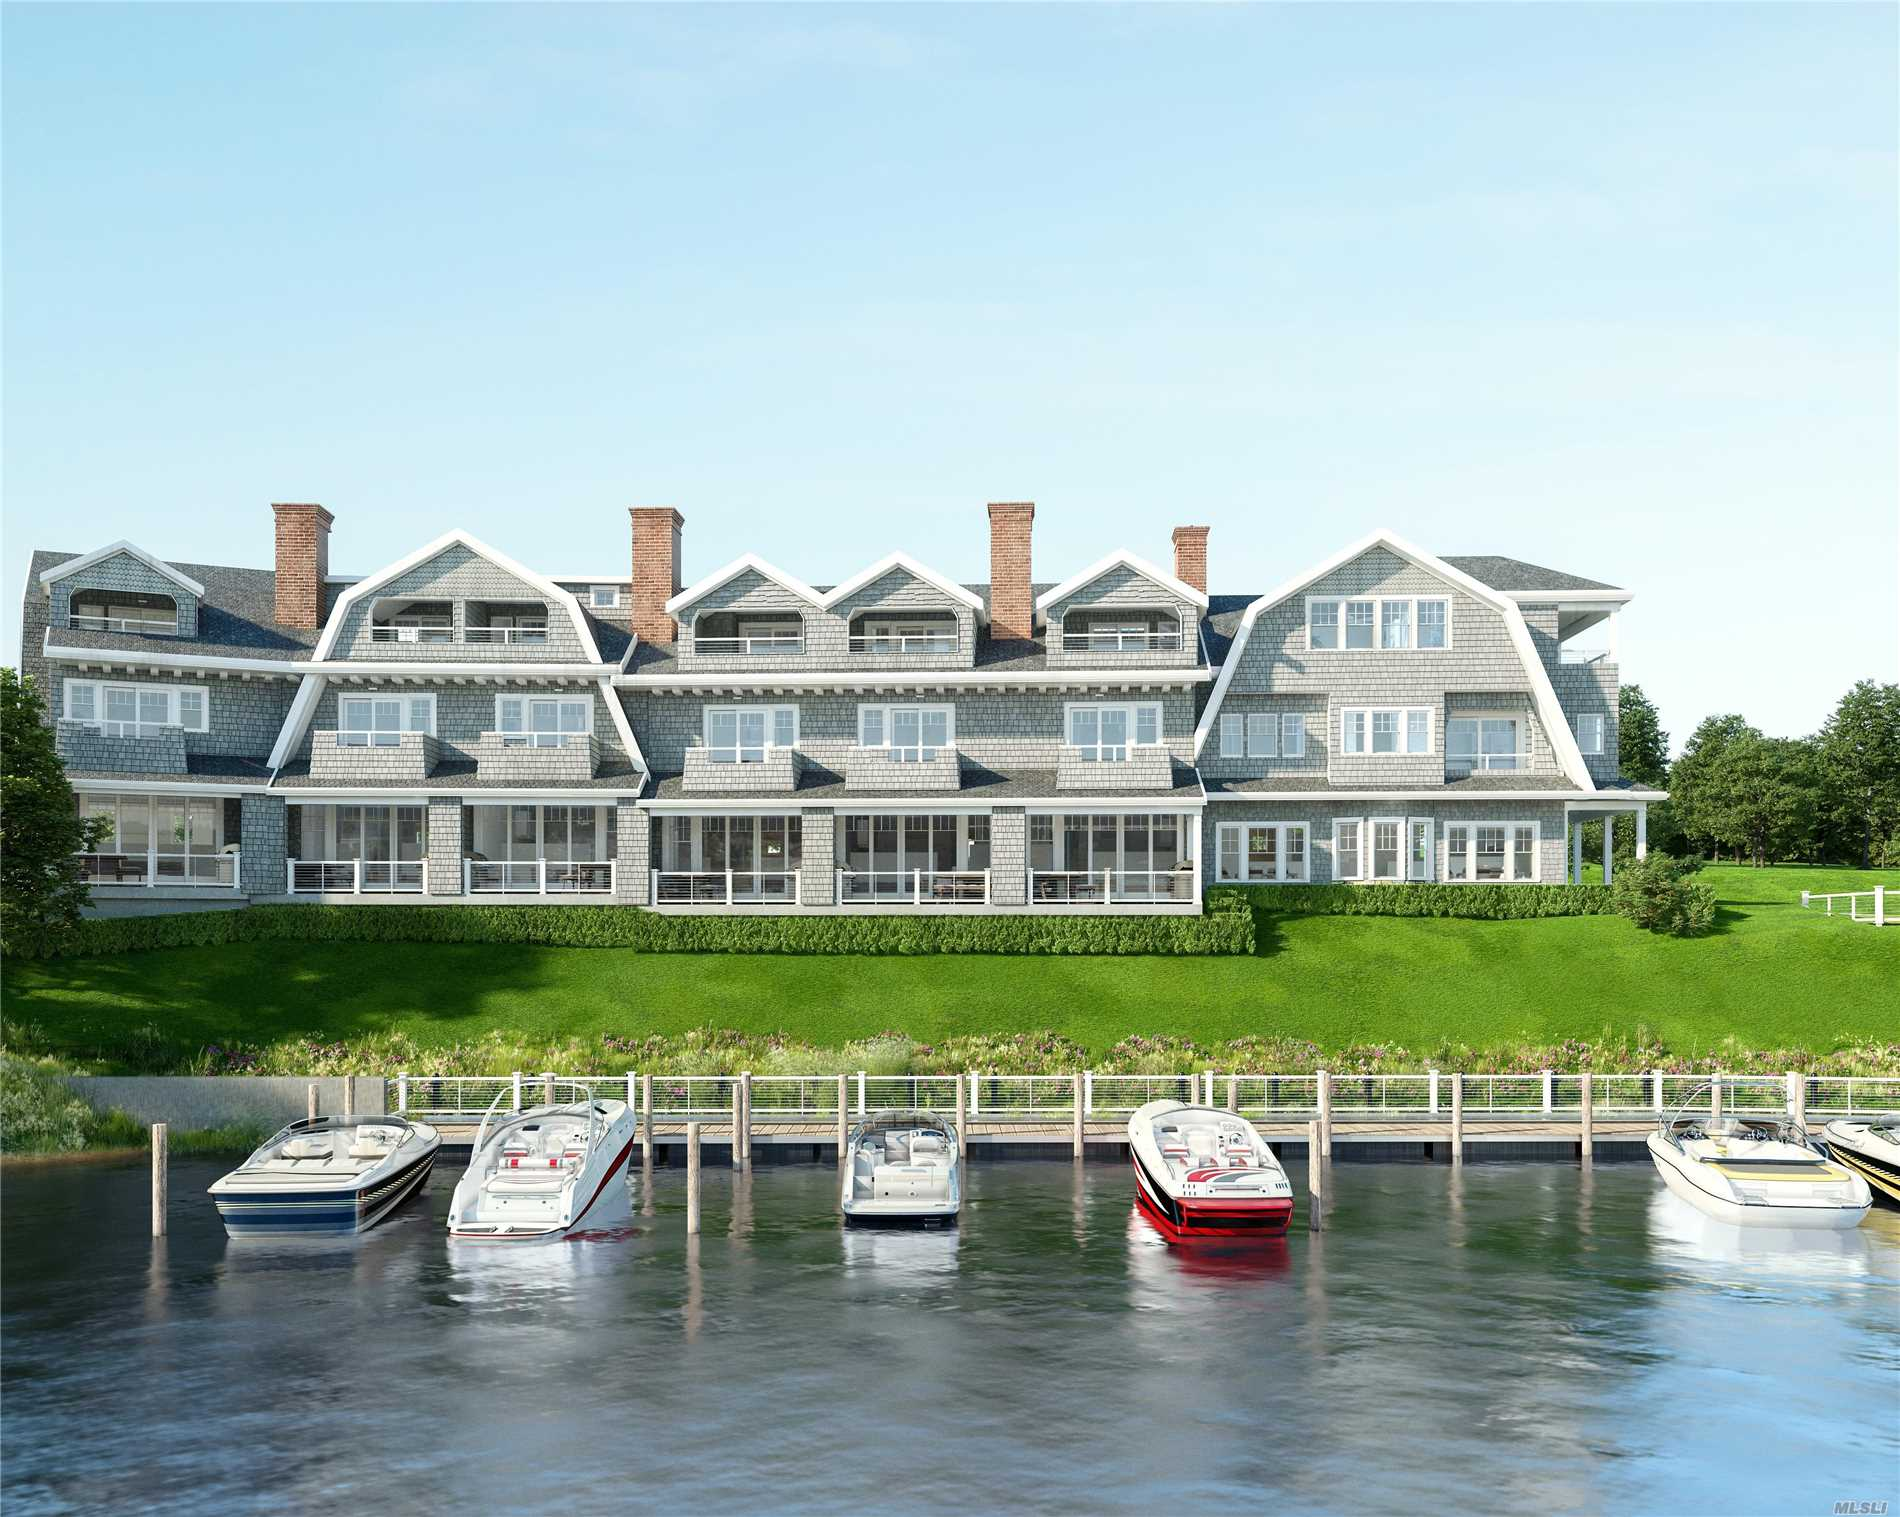 Property for sale at 29 Old Boathouse Ln Unit 405, Hampton Bays,  New York 11946